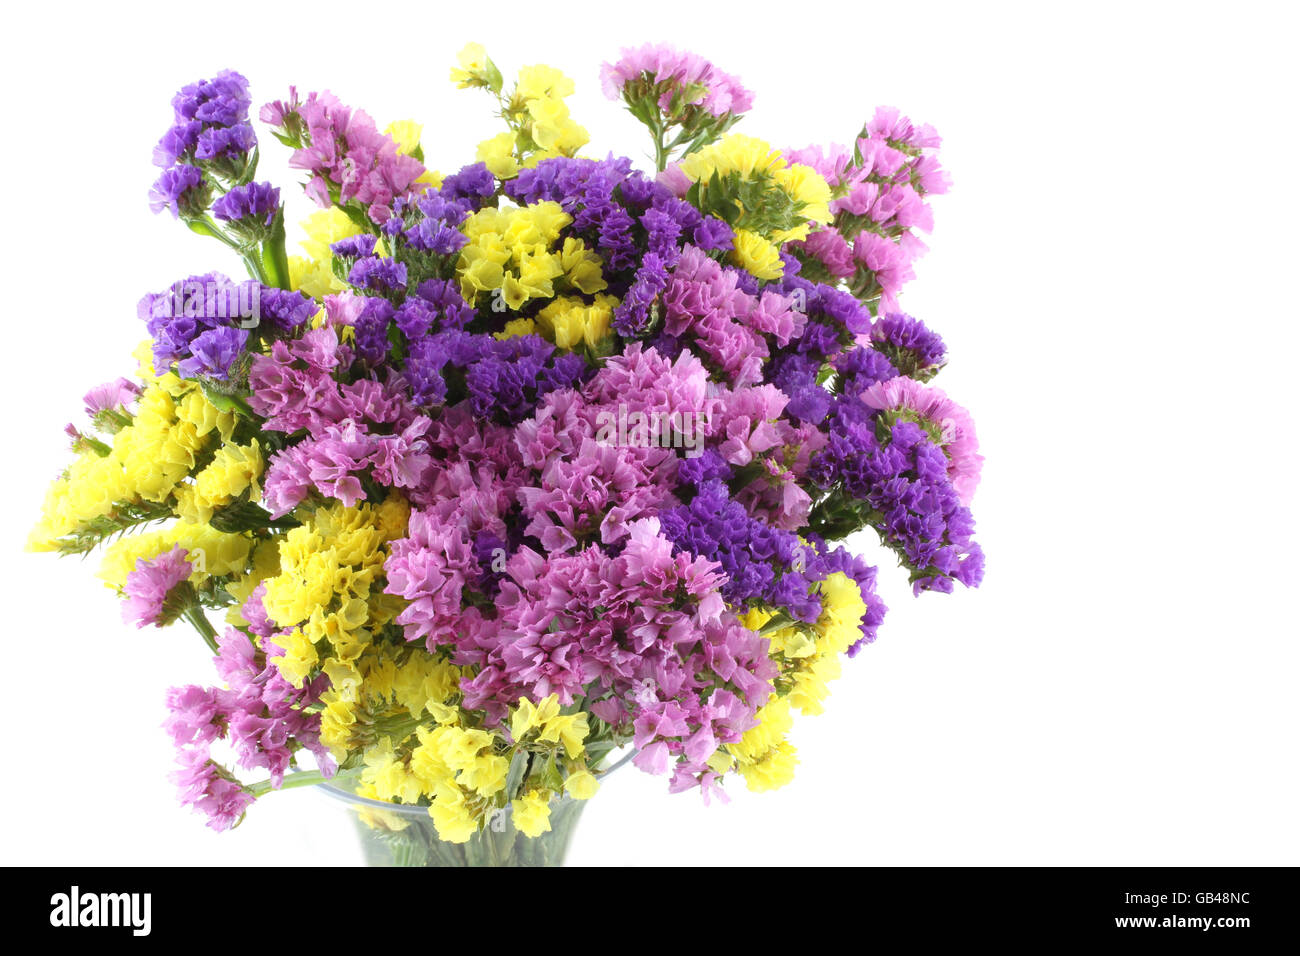 Pink  purple  yellow Statice flowers bouquet on white background     Pink  purple  yellow Statice flowers bouquet on white background